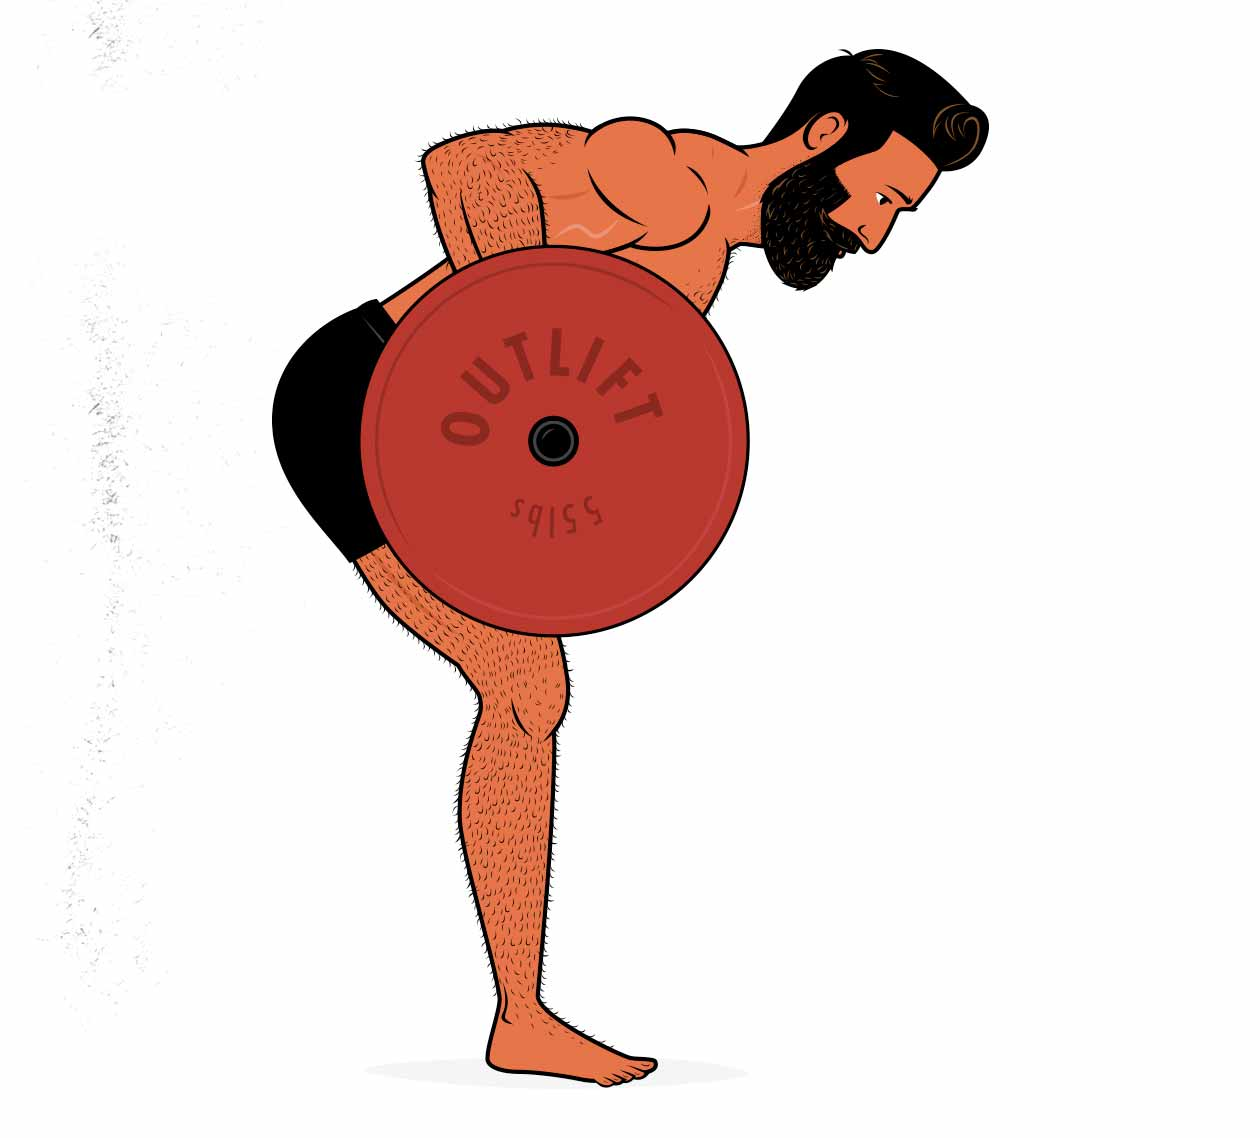 Illustration of a man doing a bent-over barbell row to build muscle in his upper back.